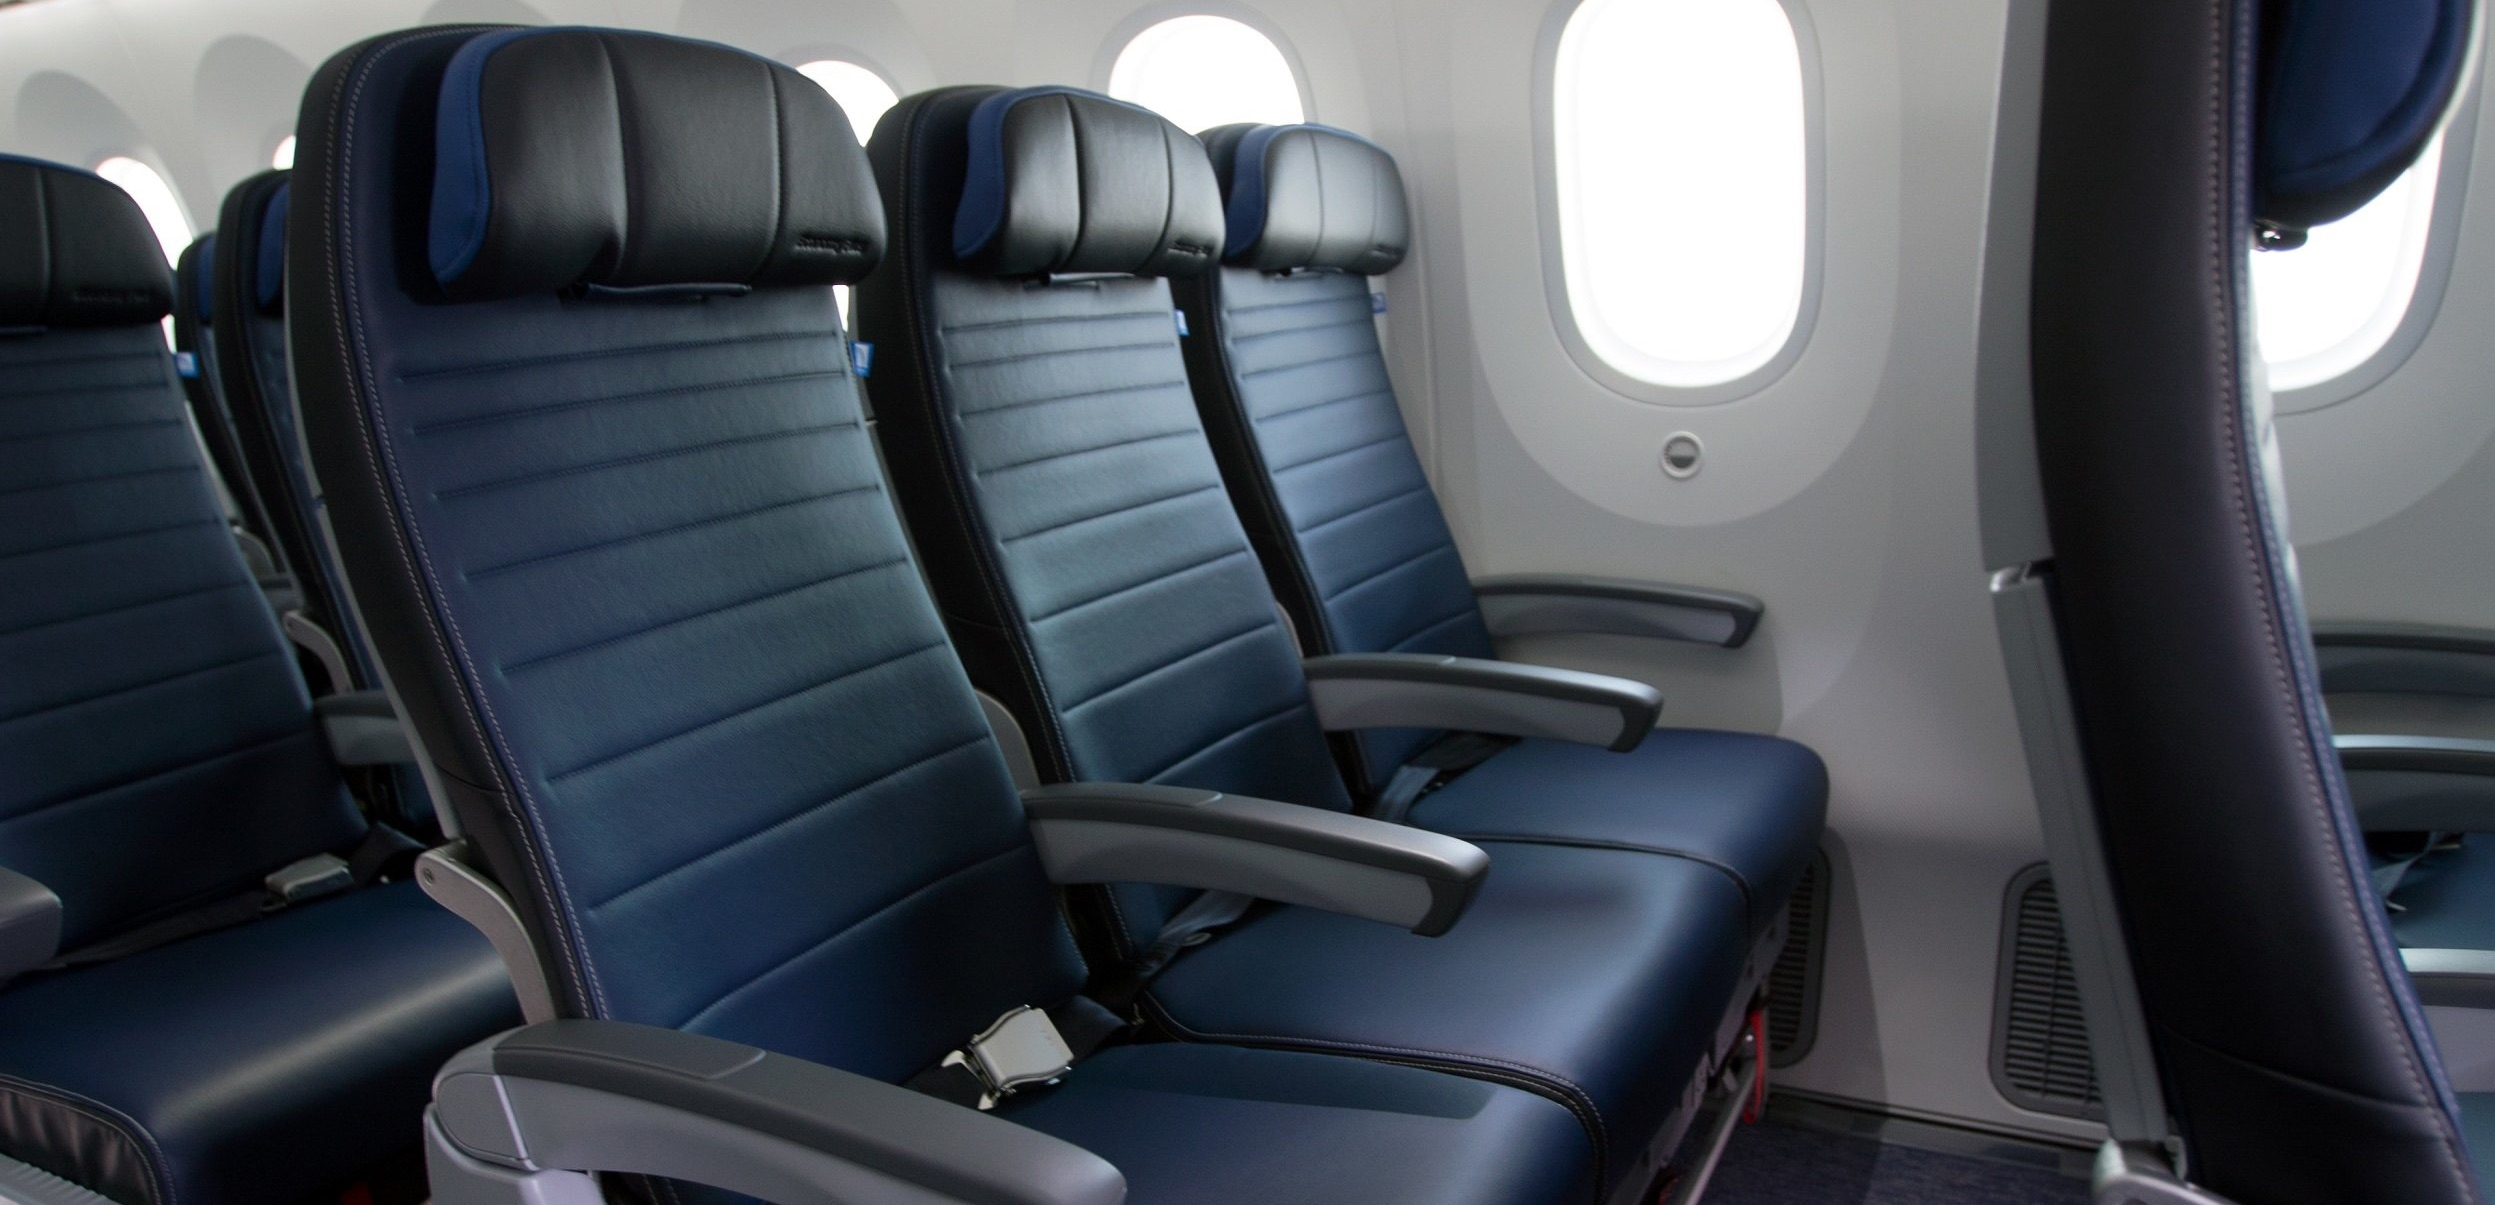 800a0a254f26 A fat-shaming passenger was escorted off a United flight after complaining  bitterly about having to sit between two passengers of size in economy  class.